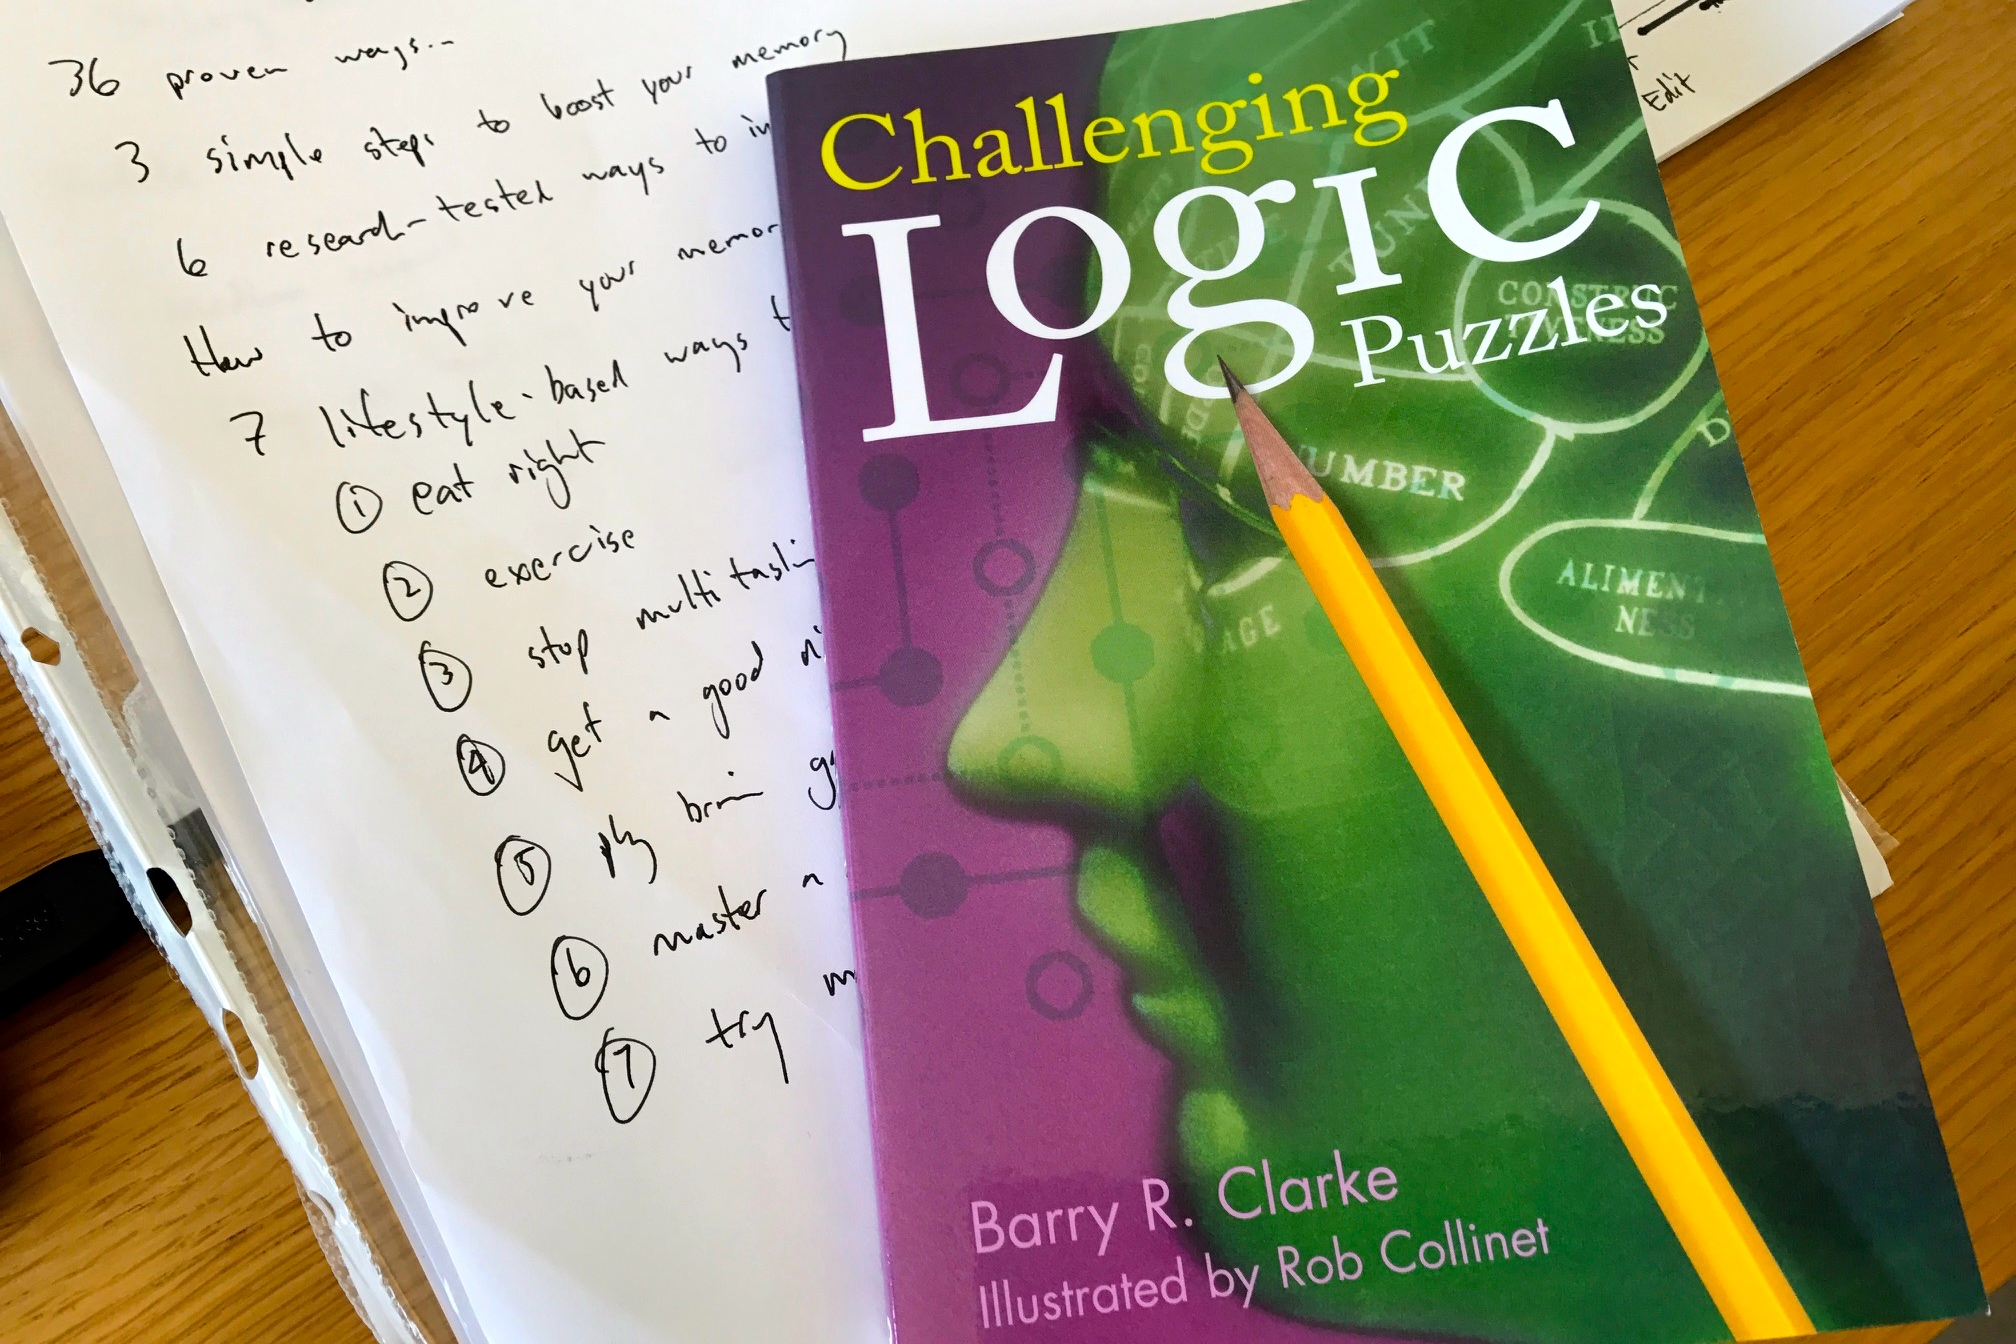 Improvement_Logic Puzzles to help improve brain function generally and memory specifically